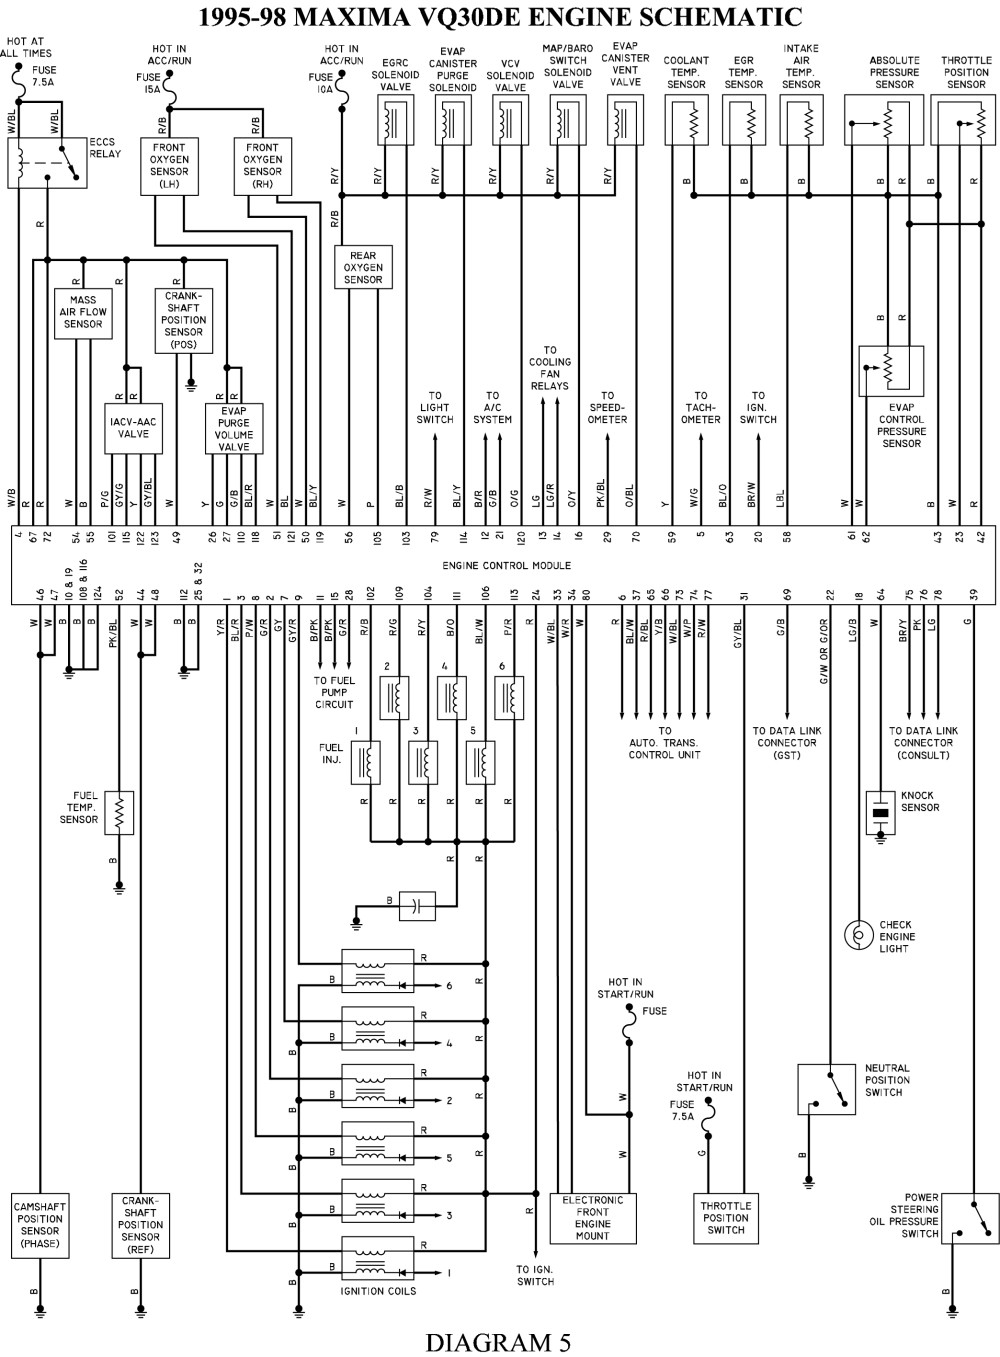 hight resolution of 01 nissan sentra wiring diagram wiring diagram operations01 nissan sentra wiring diagram wiring library 2001 nissan